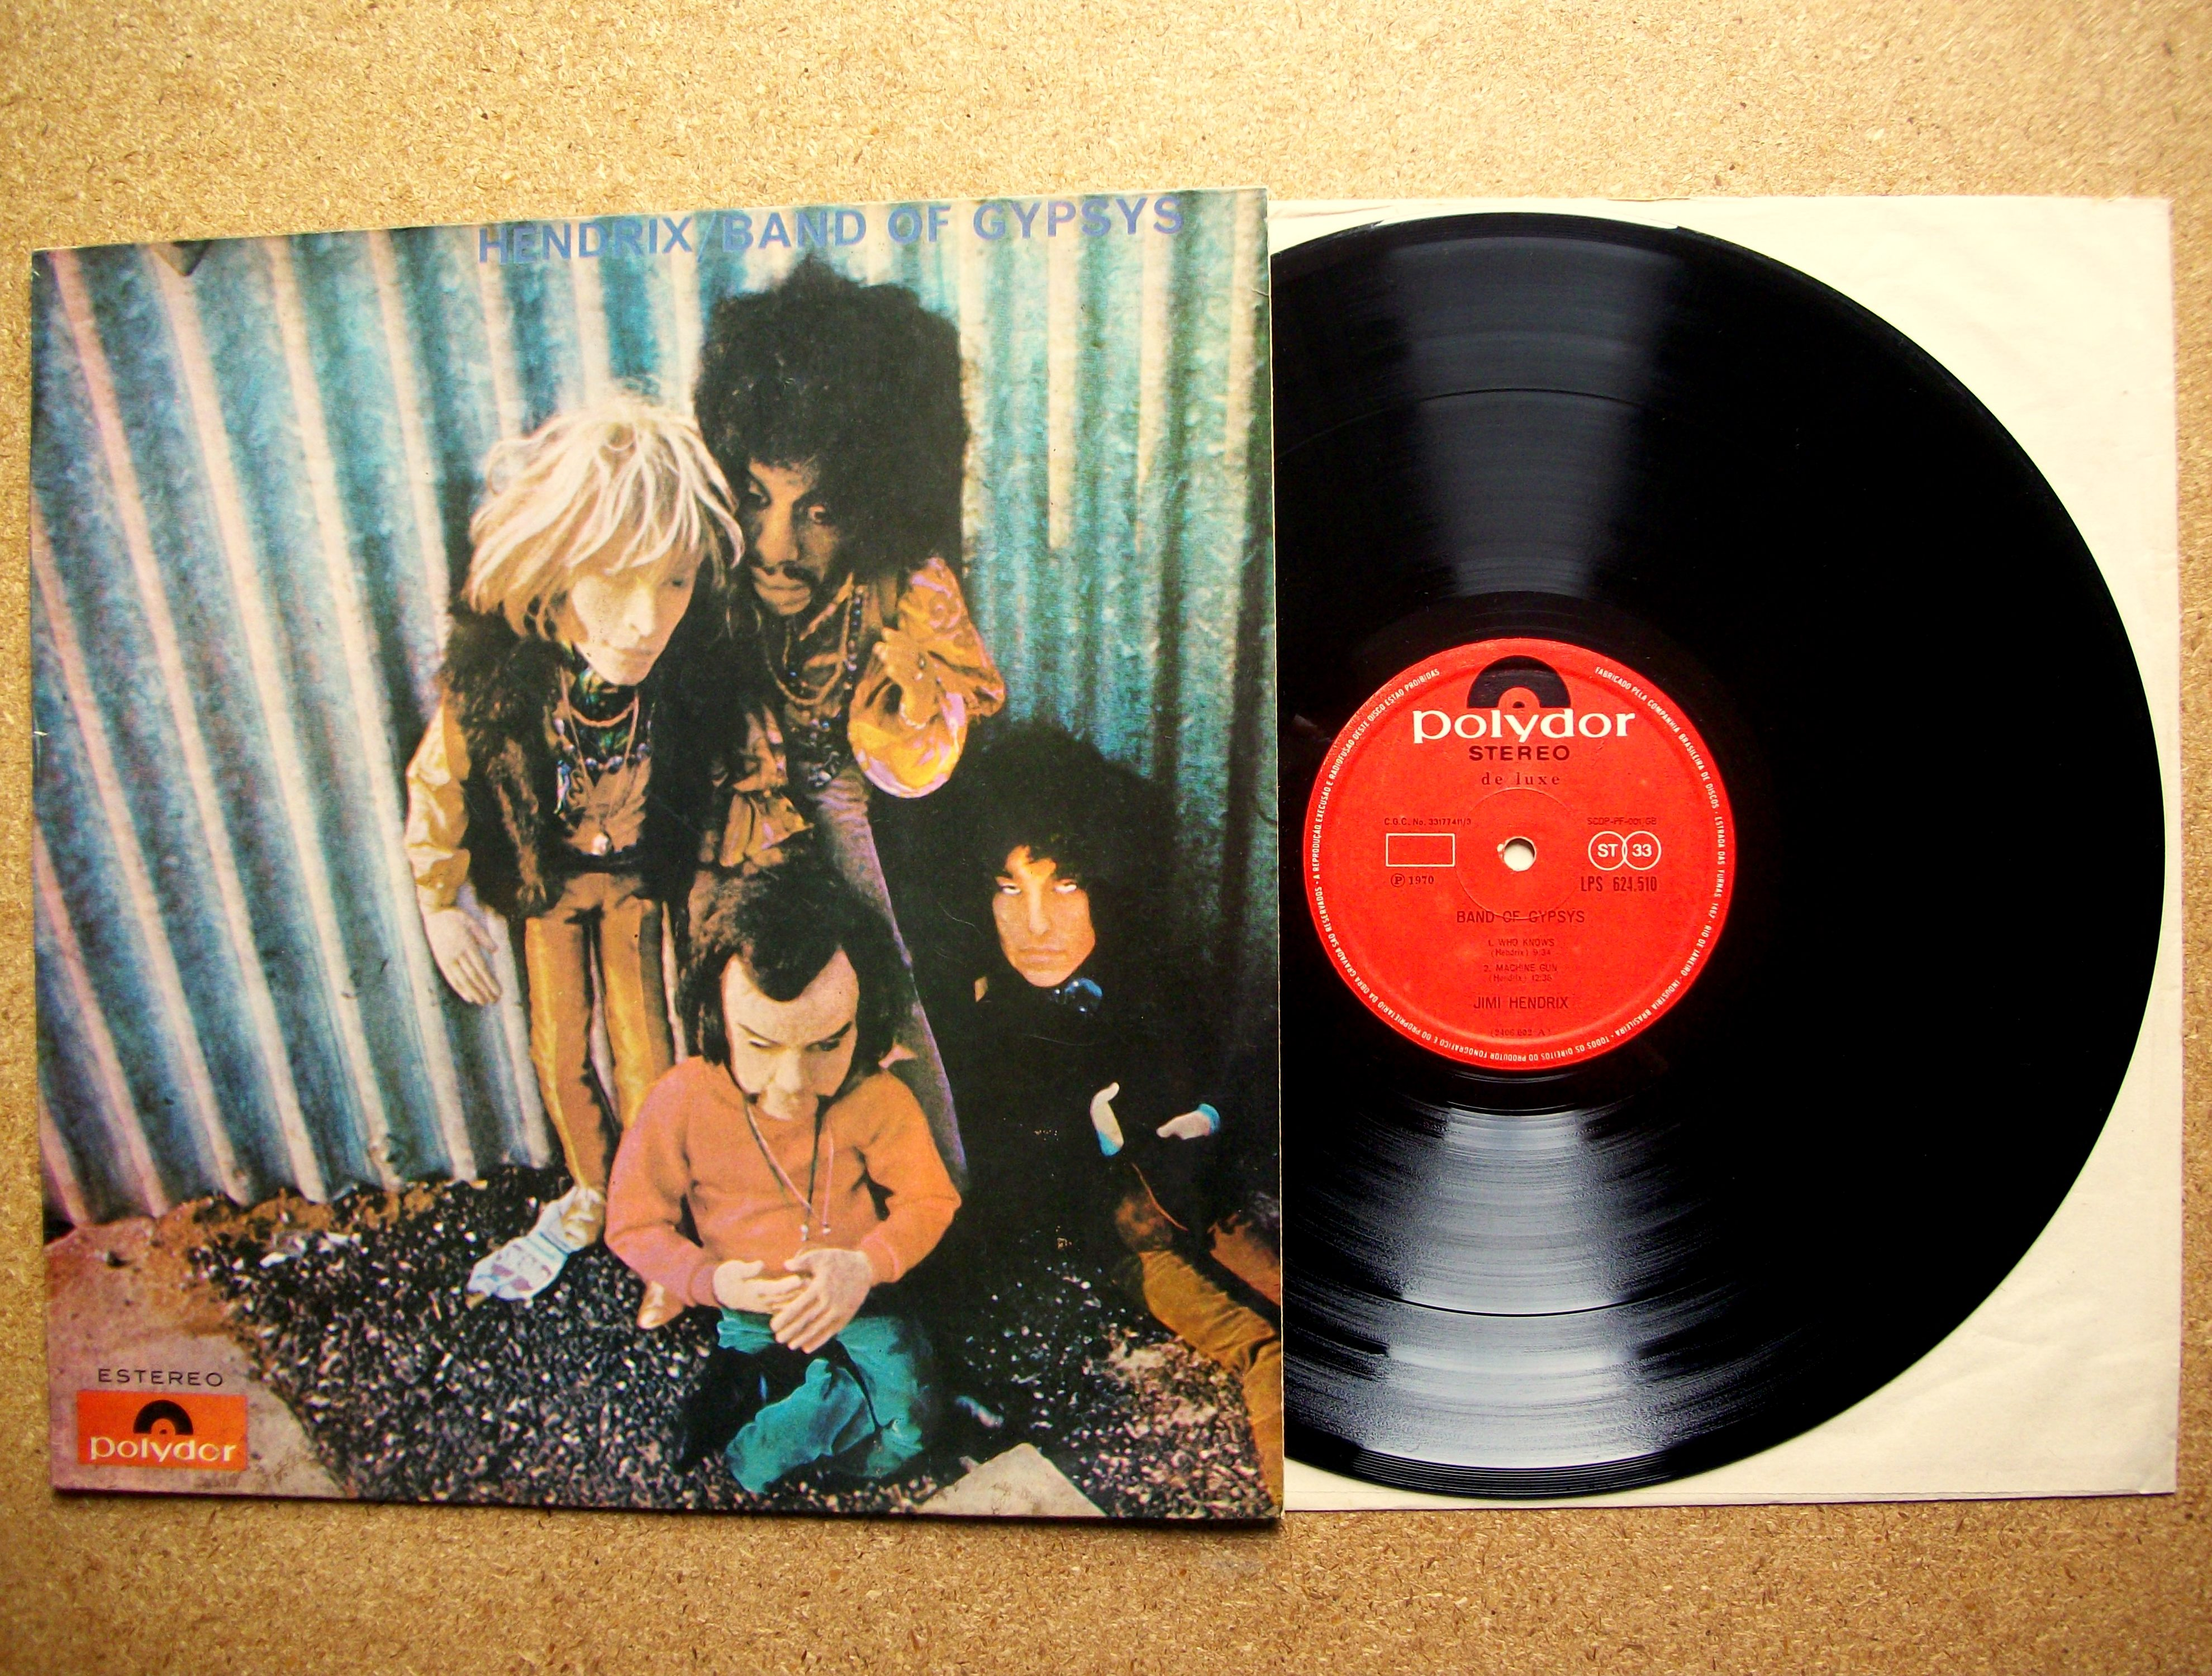 sinister vinyl collection jimi hendrix band of gypsys band of gypsys 1970 sinister. Black Bedroom Furniture Sets. Home Design Ideas